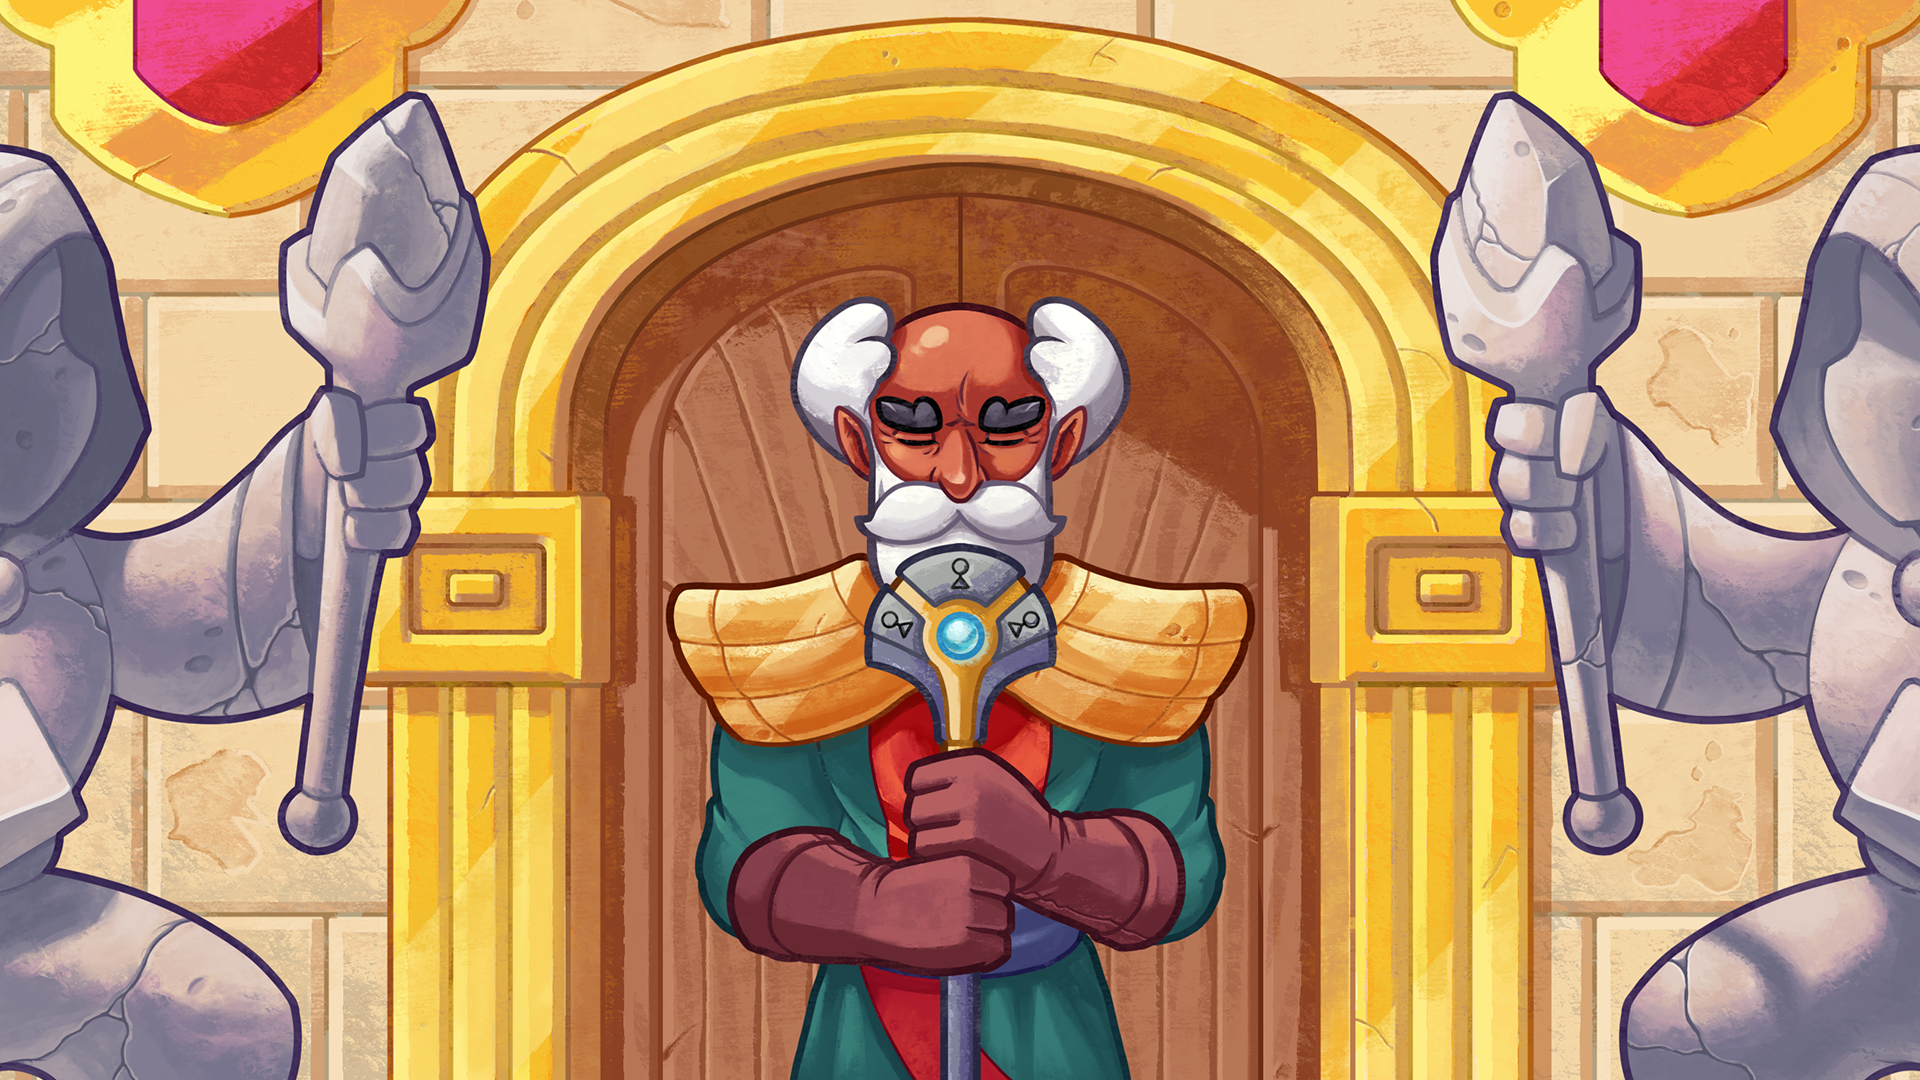 The Great Prince E-Spell standing in front of the Arena doors.